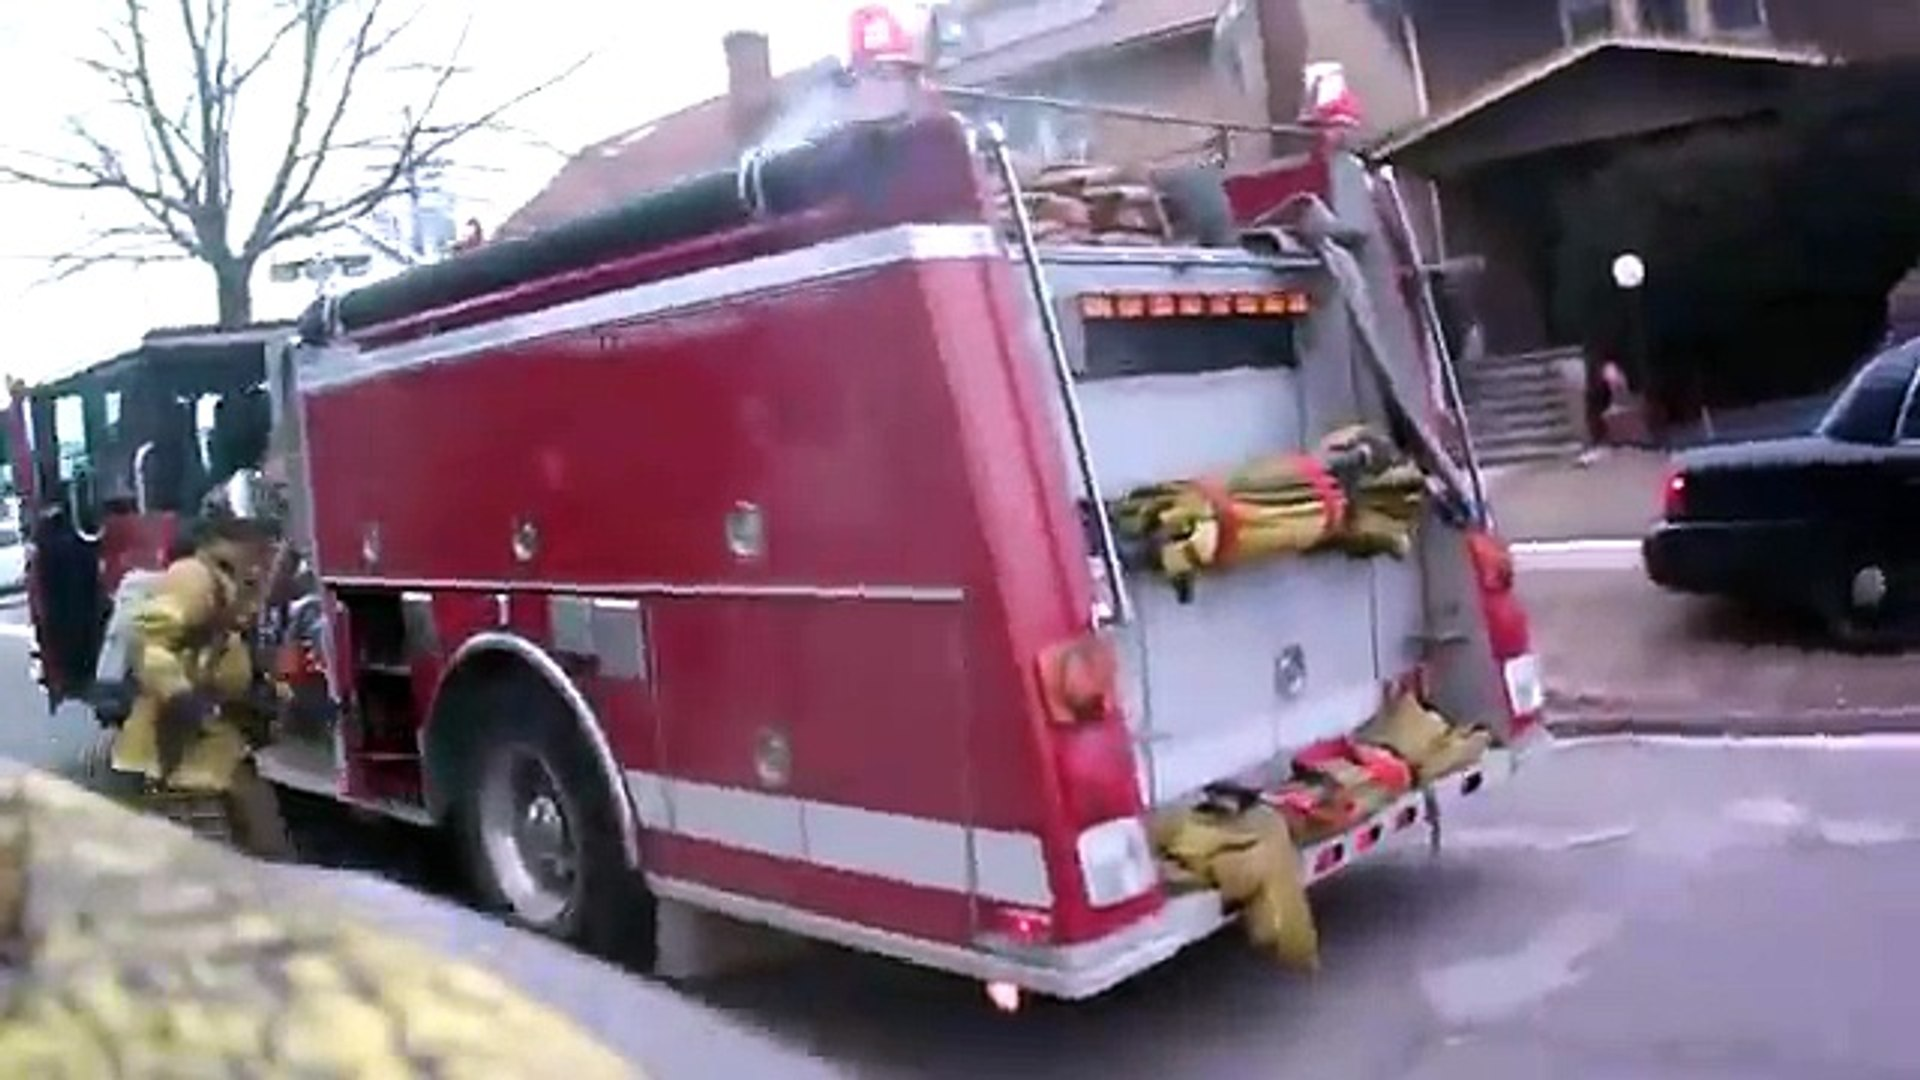 3 well involved house fires on Portage st Highland Park MI fatal